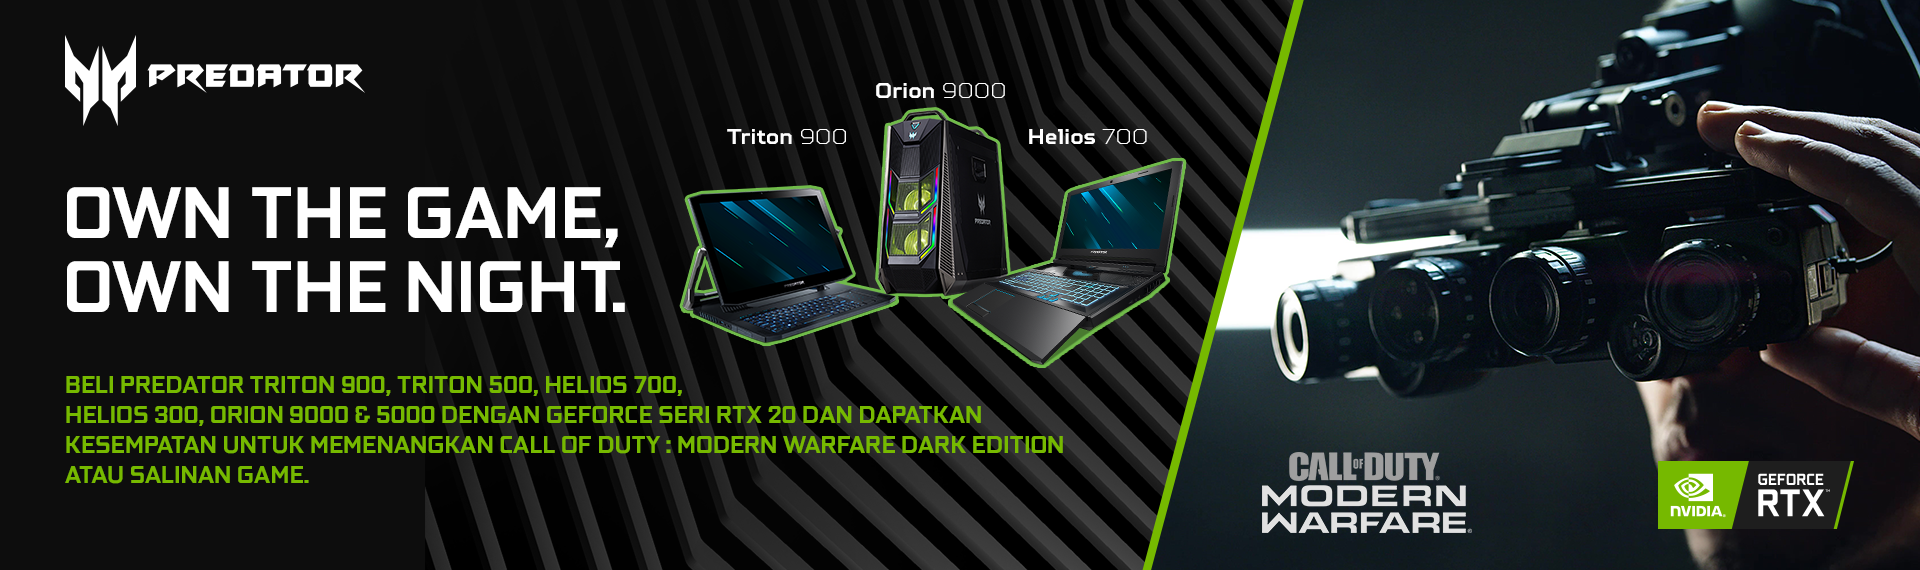 Beli Laptop & Desktop Gaming Predator, Dapat Kesempatan Menang Call of Duty: Modern Warfare Dark Edition!